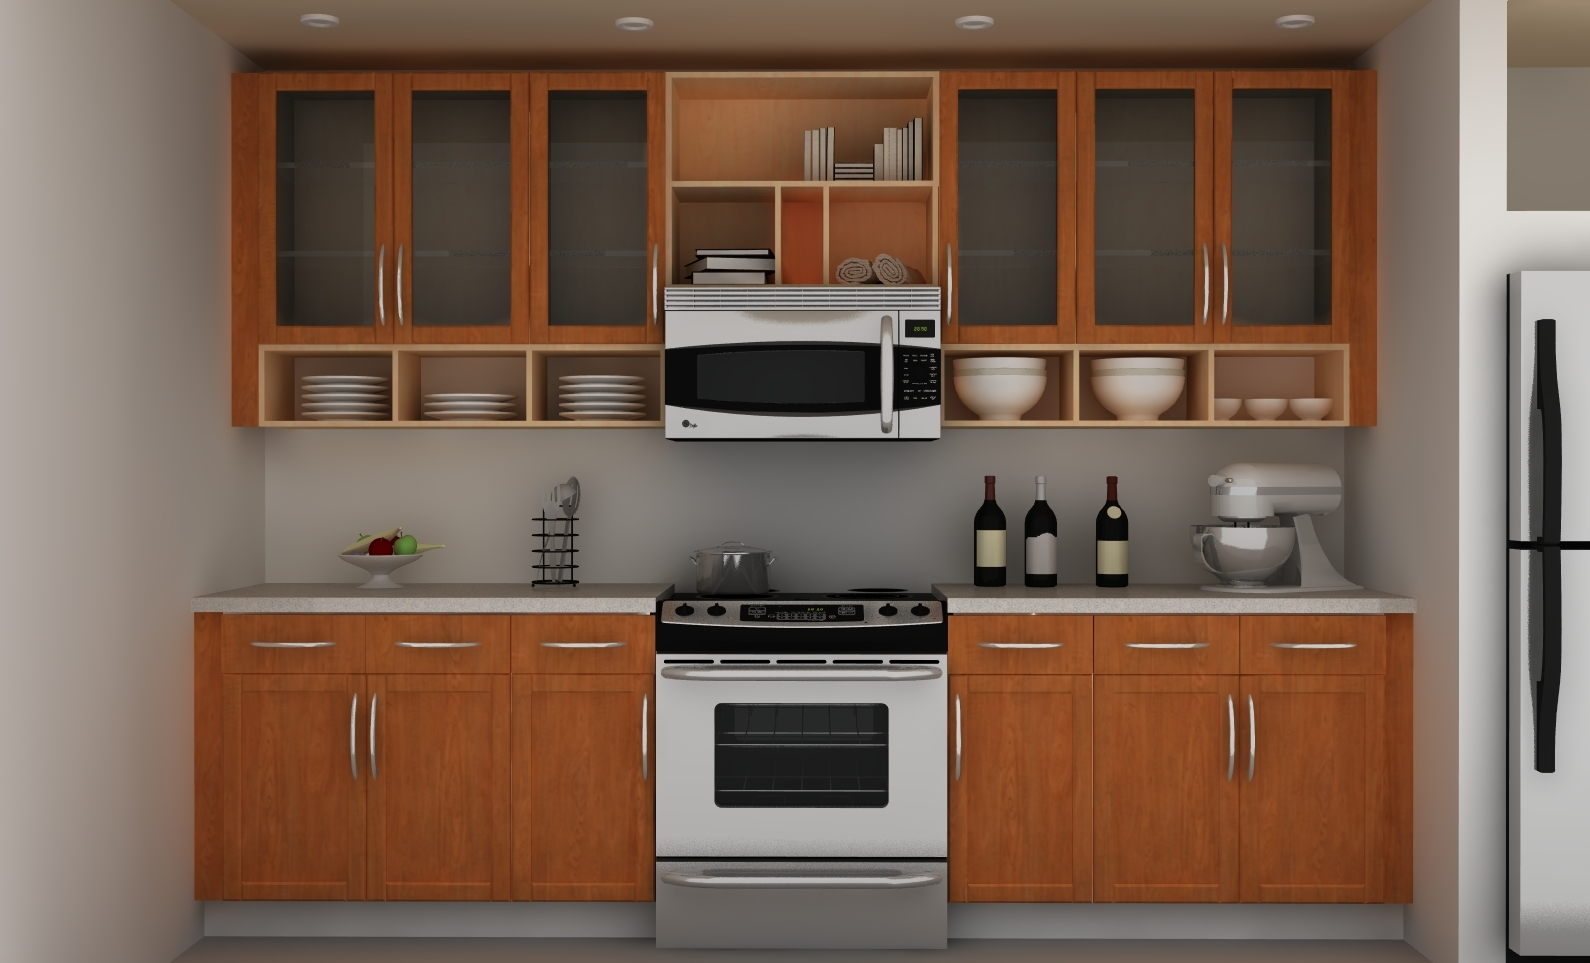 Wall Cabinet Design For Kitchen1590 X 963